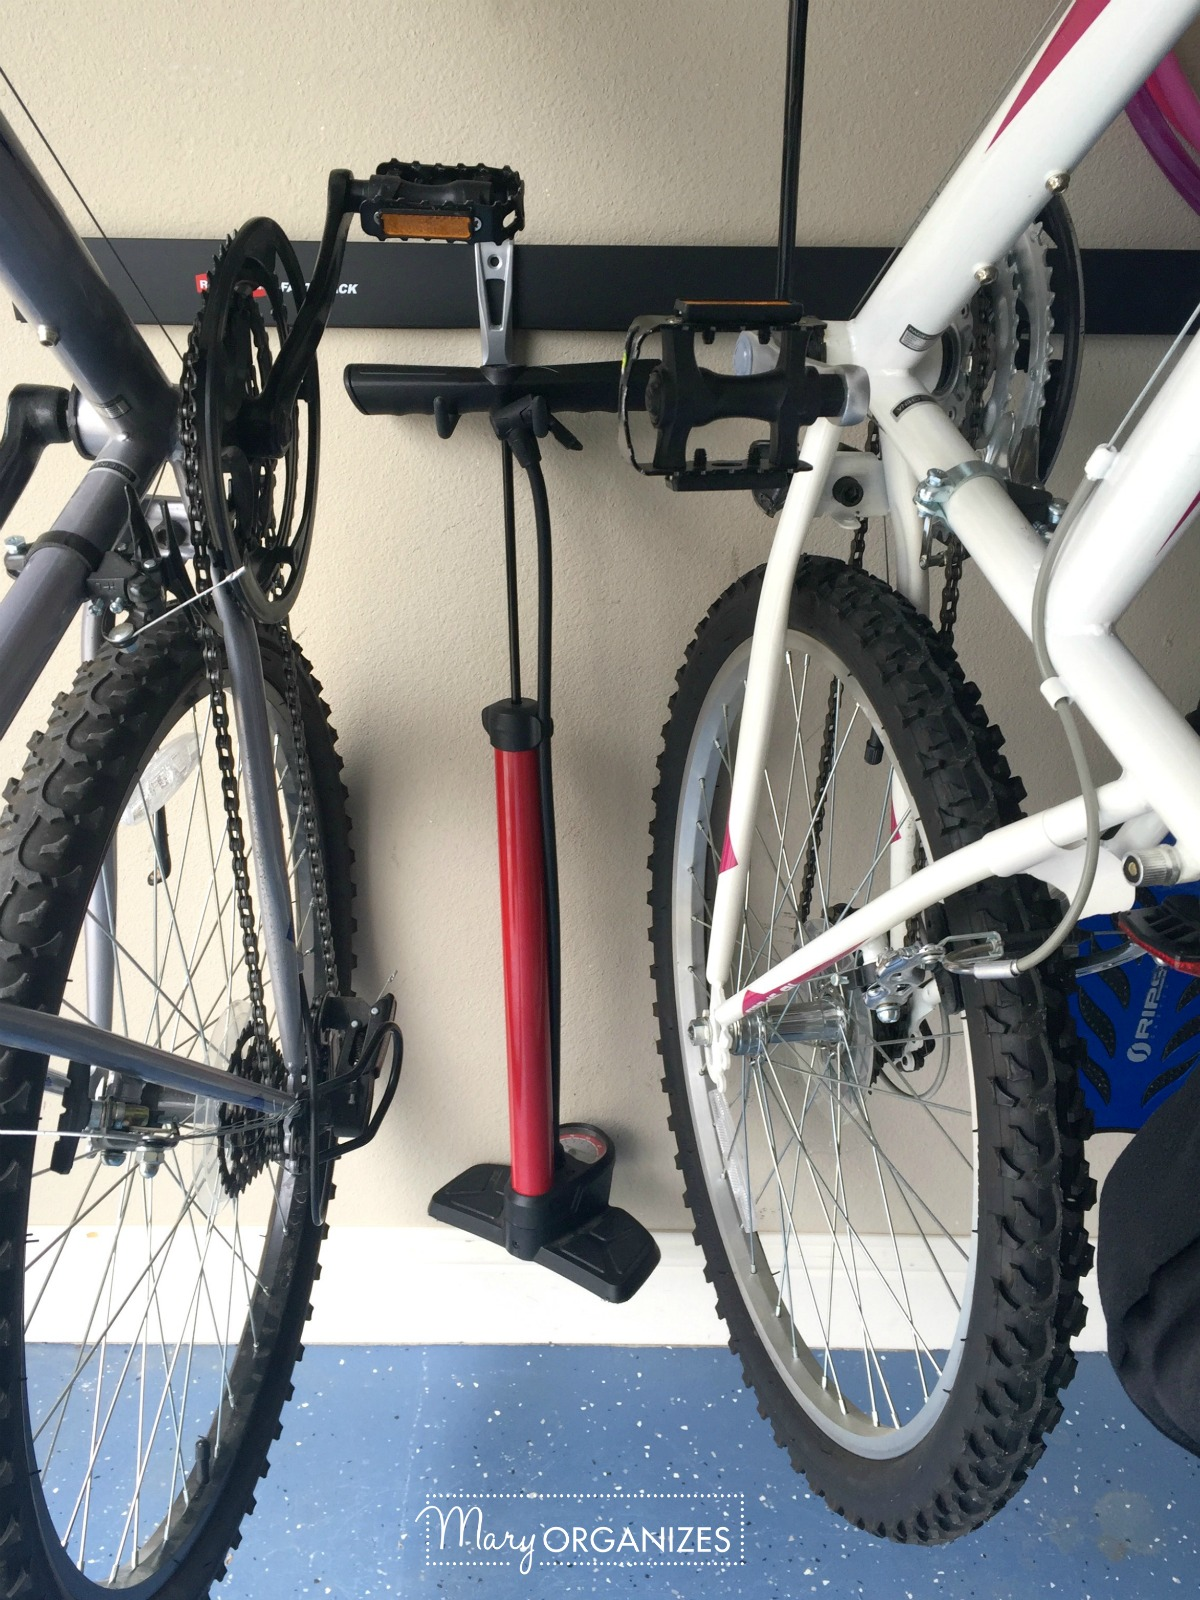 Garage Organizing - How to hang bikes scooters ripsticks balls and more -g2